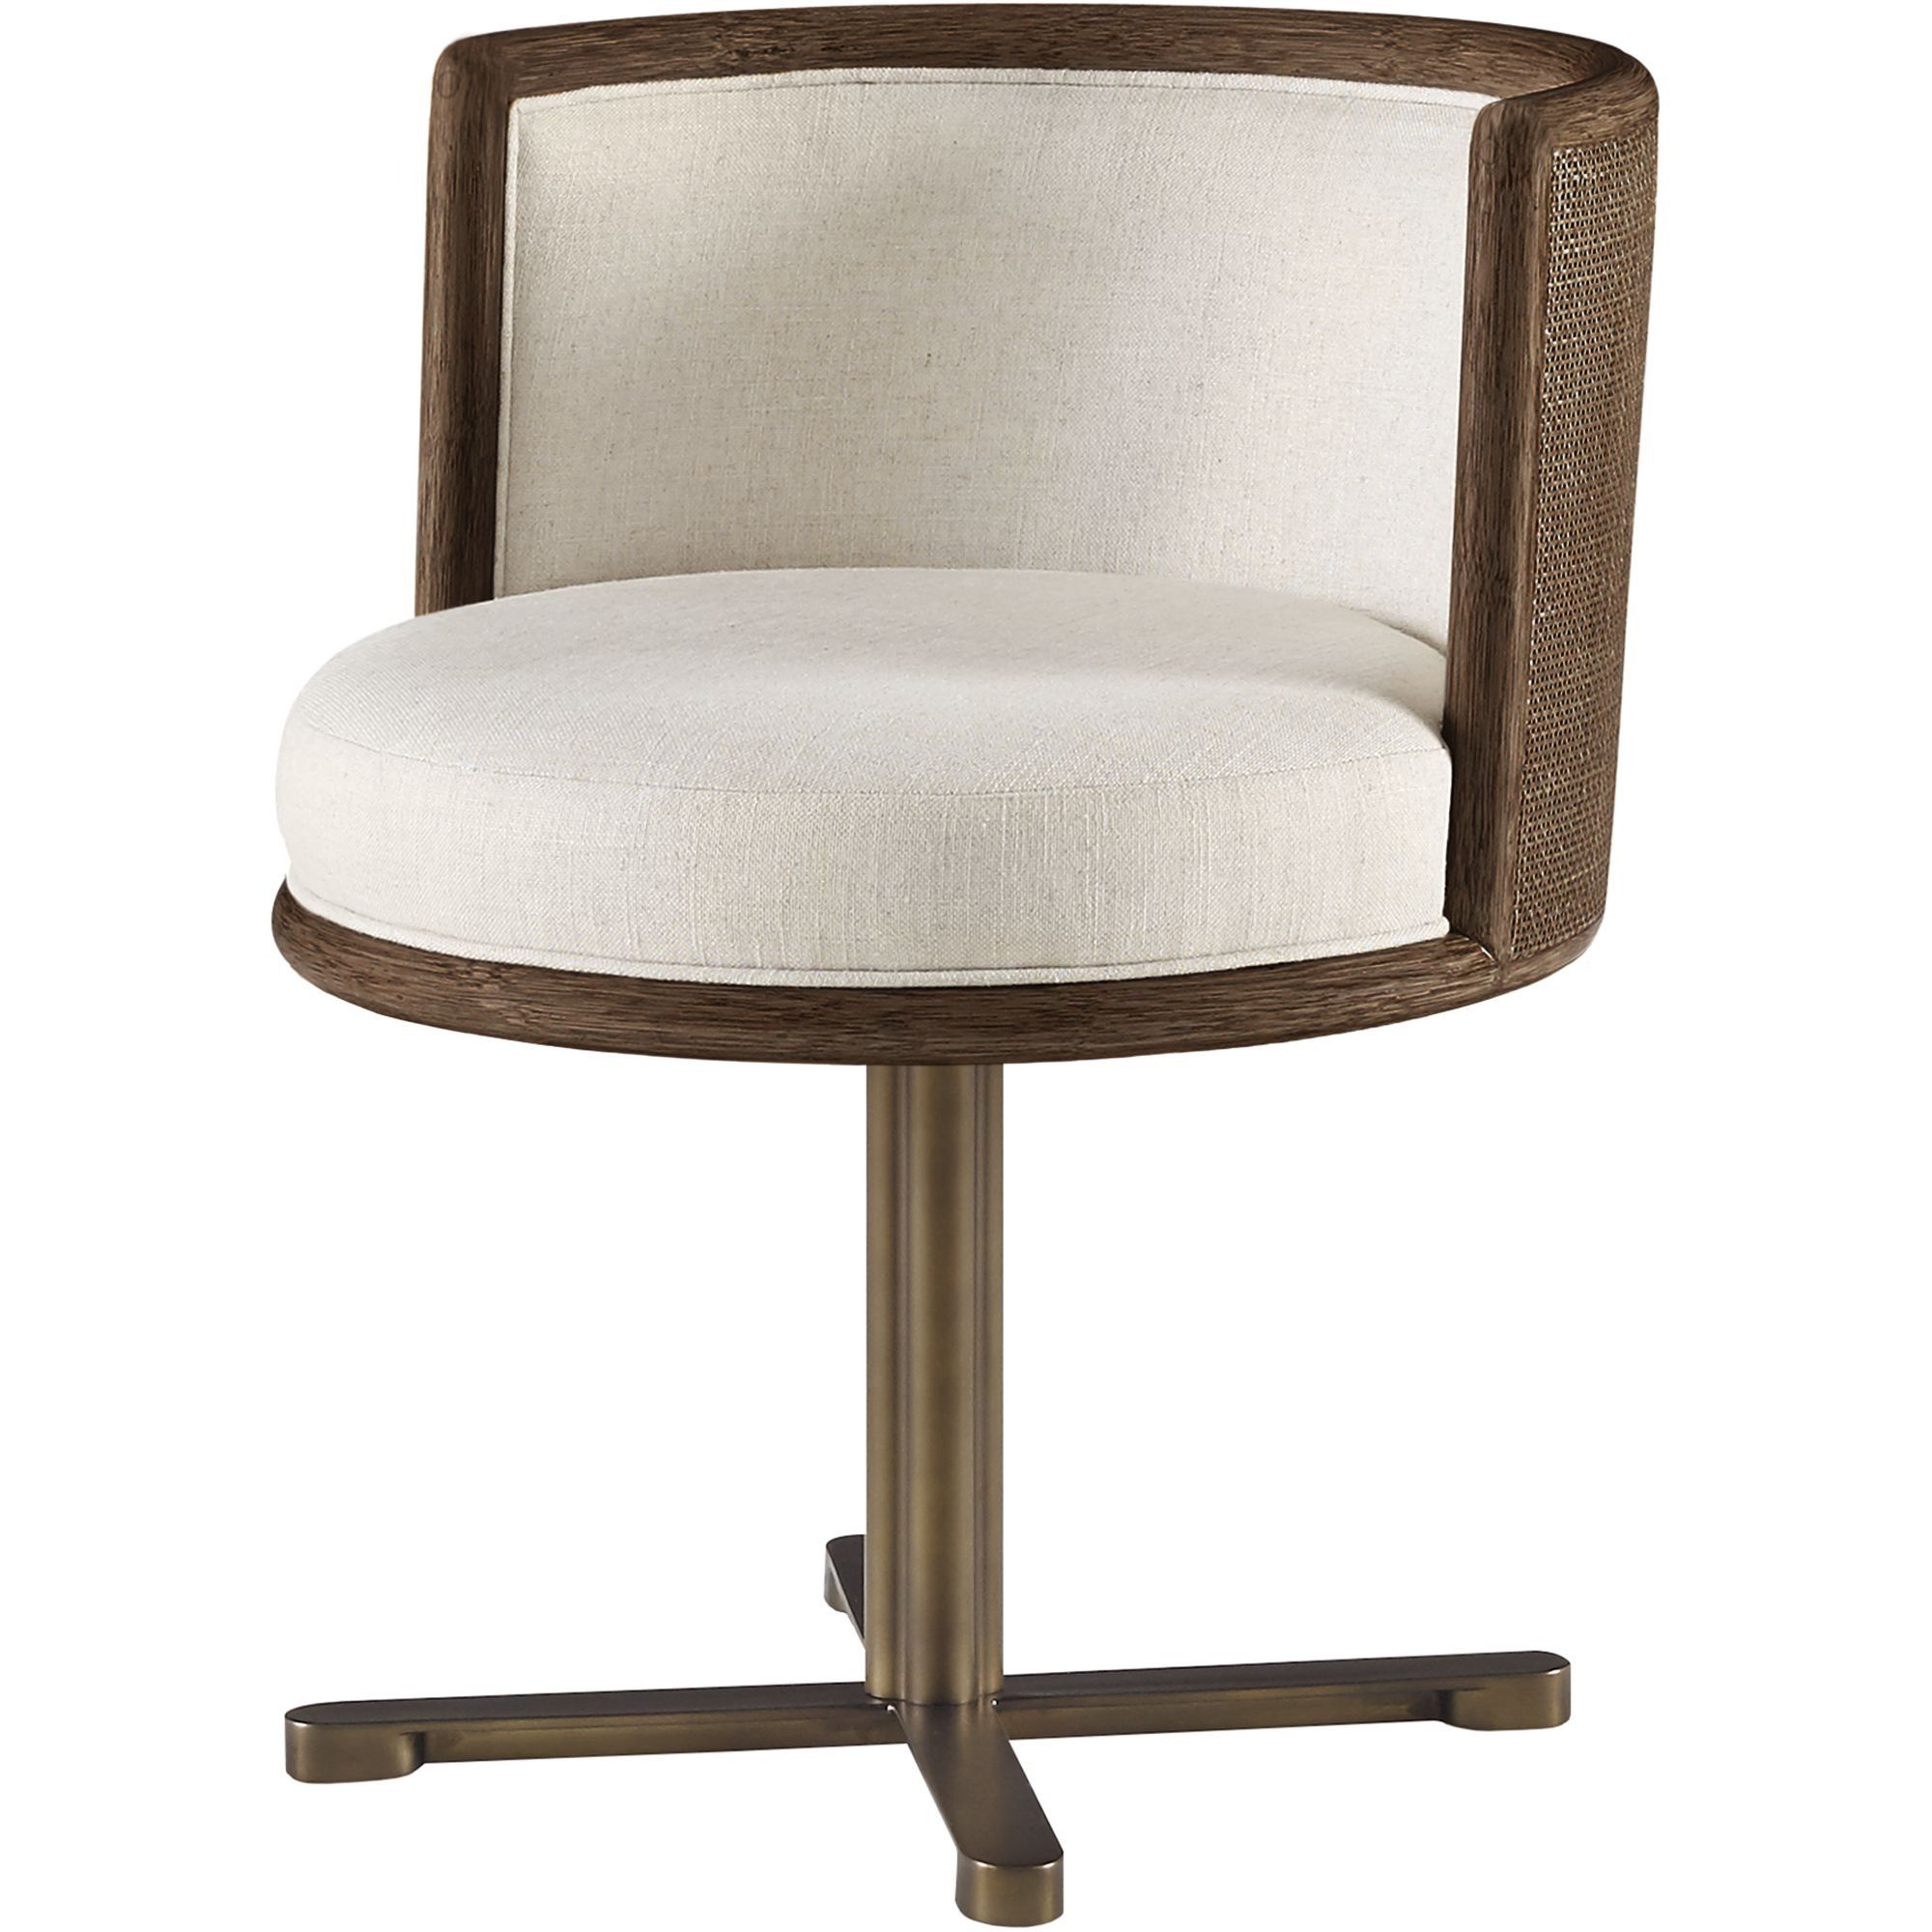 Buy Barbara Barry Canyon Swivel Dining Chair By McGuire Furniture